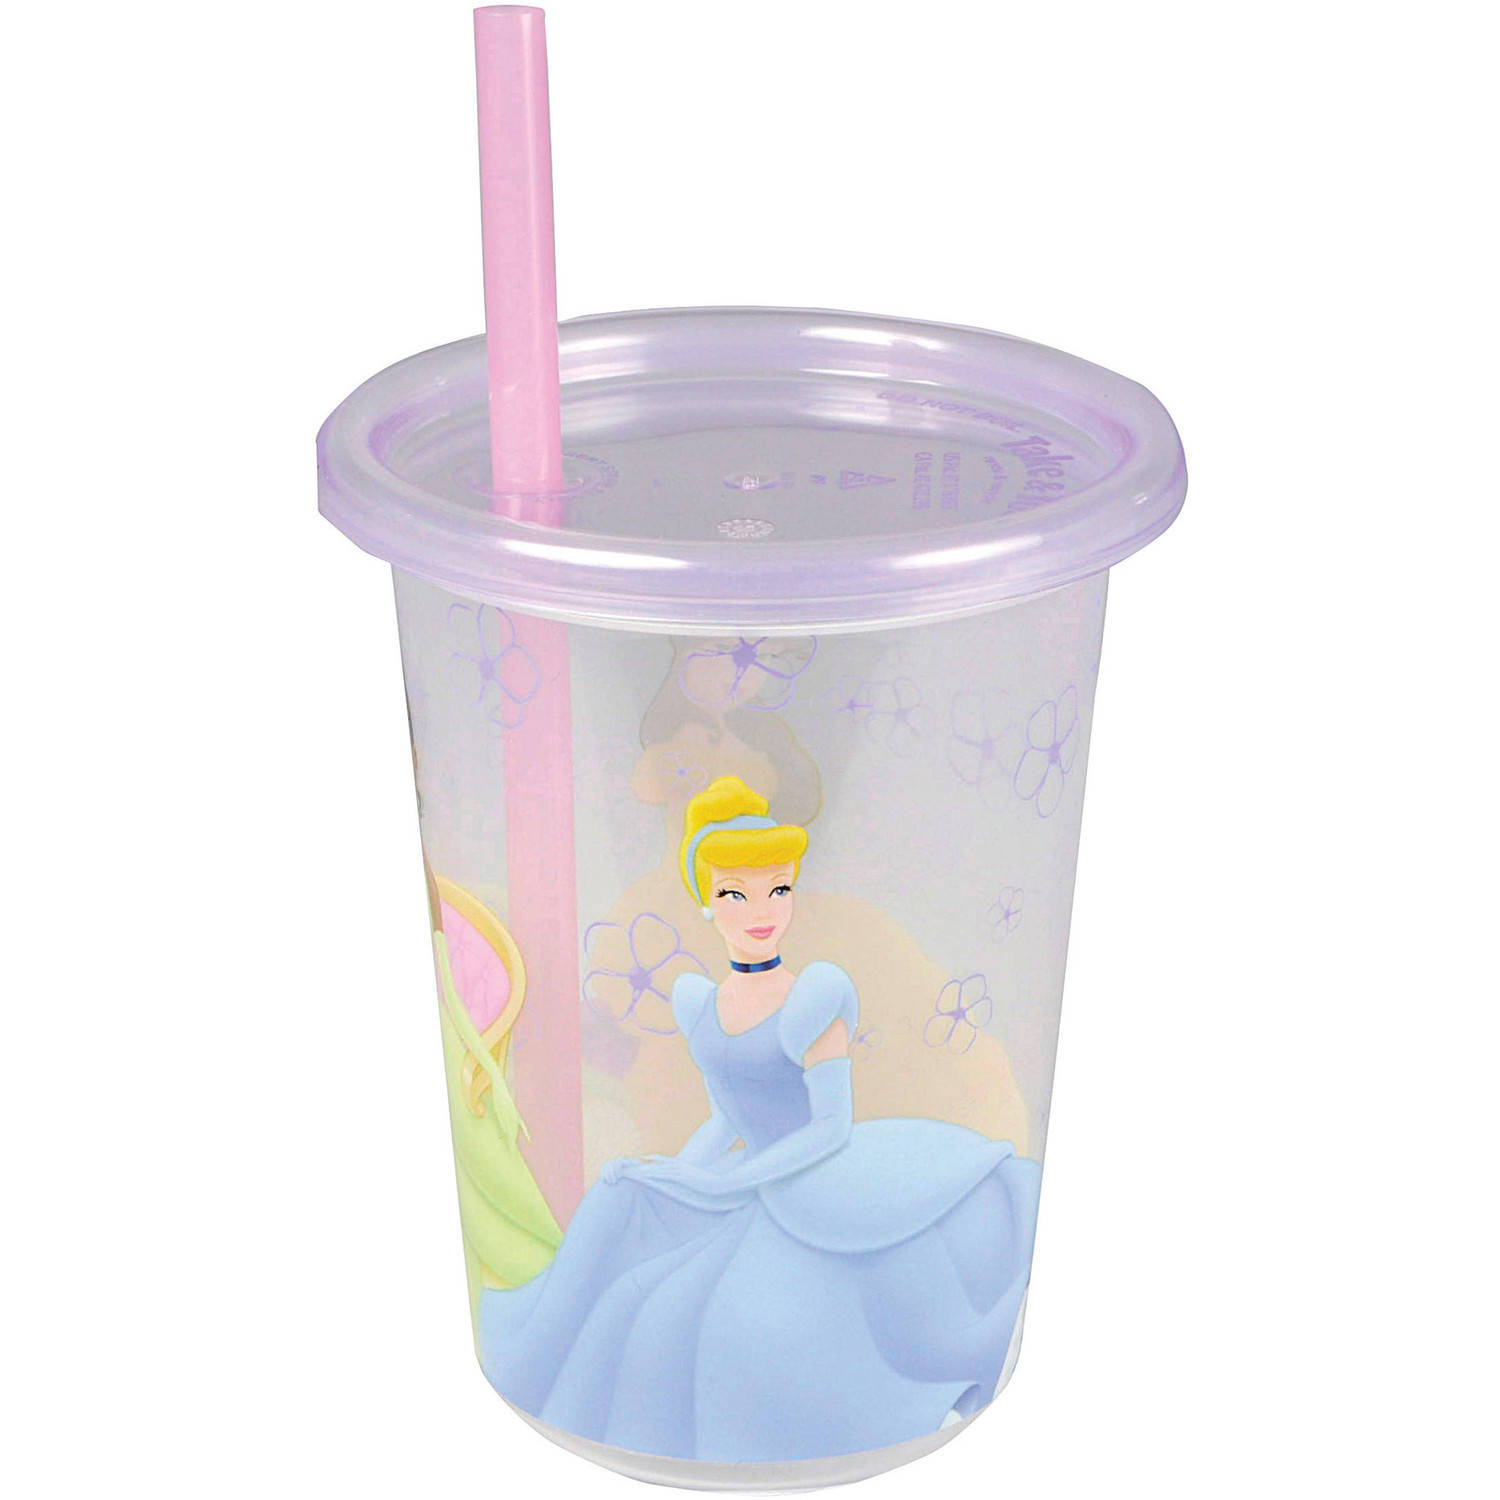 The First Years Disney Princess Take & Toss 10 oz. Straw Cups (3-pack)